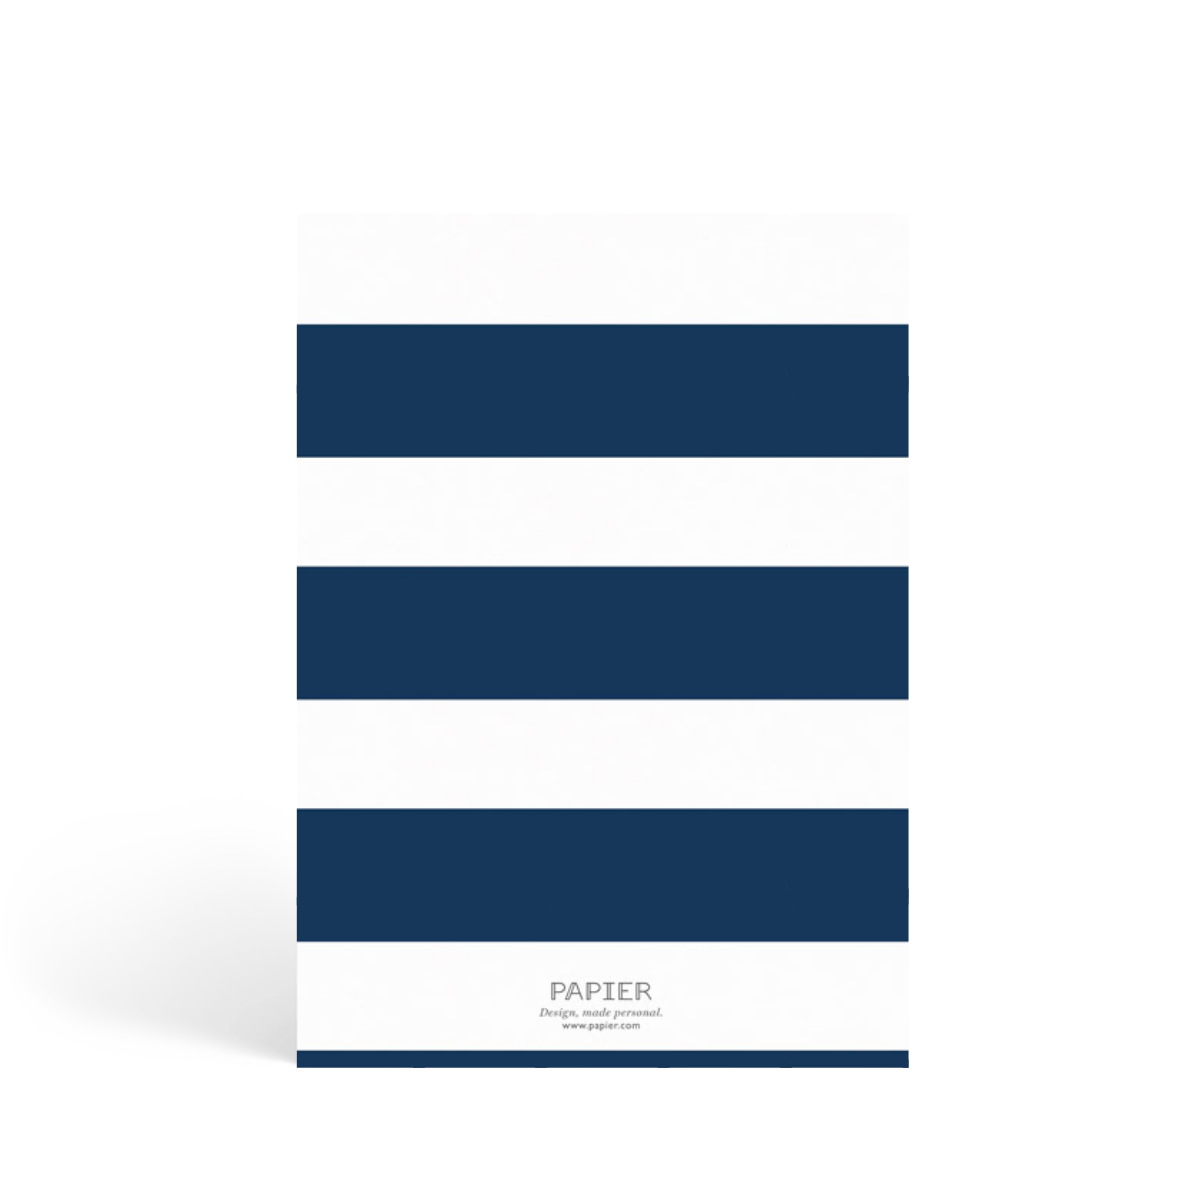 Https%3a%2f%2fwww.papier.com%2fproduct image%2f54890%2f5%2fnavy stripe 13192 back 1542298967.png?ixlib=rb 1.1